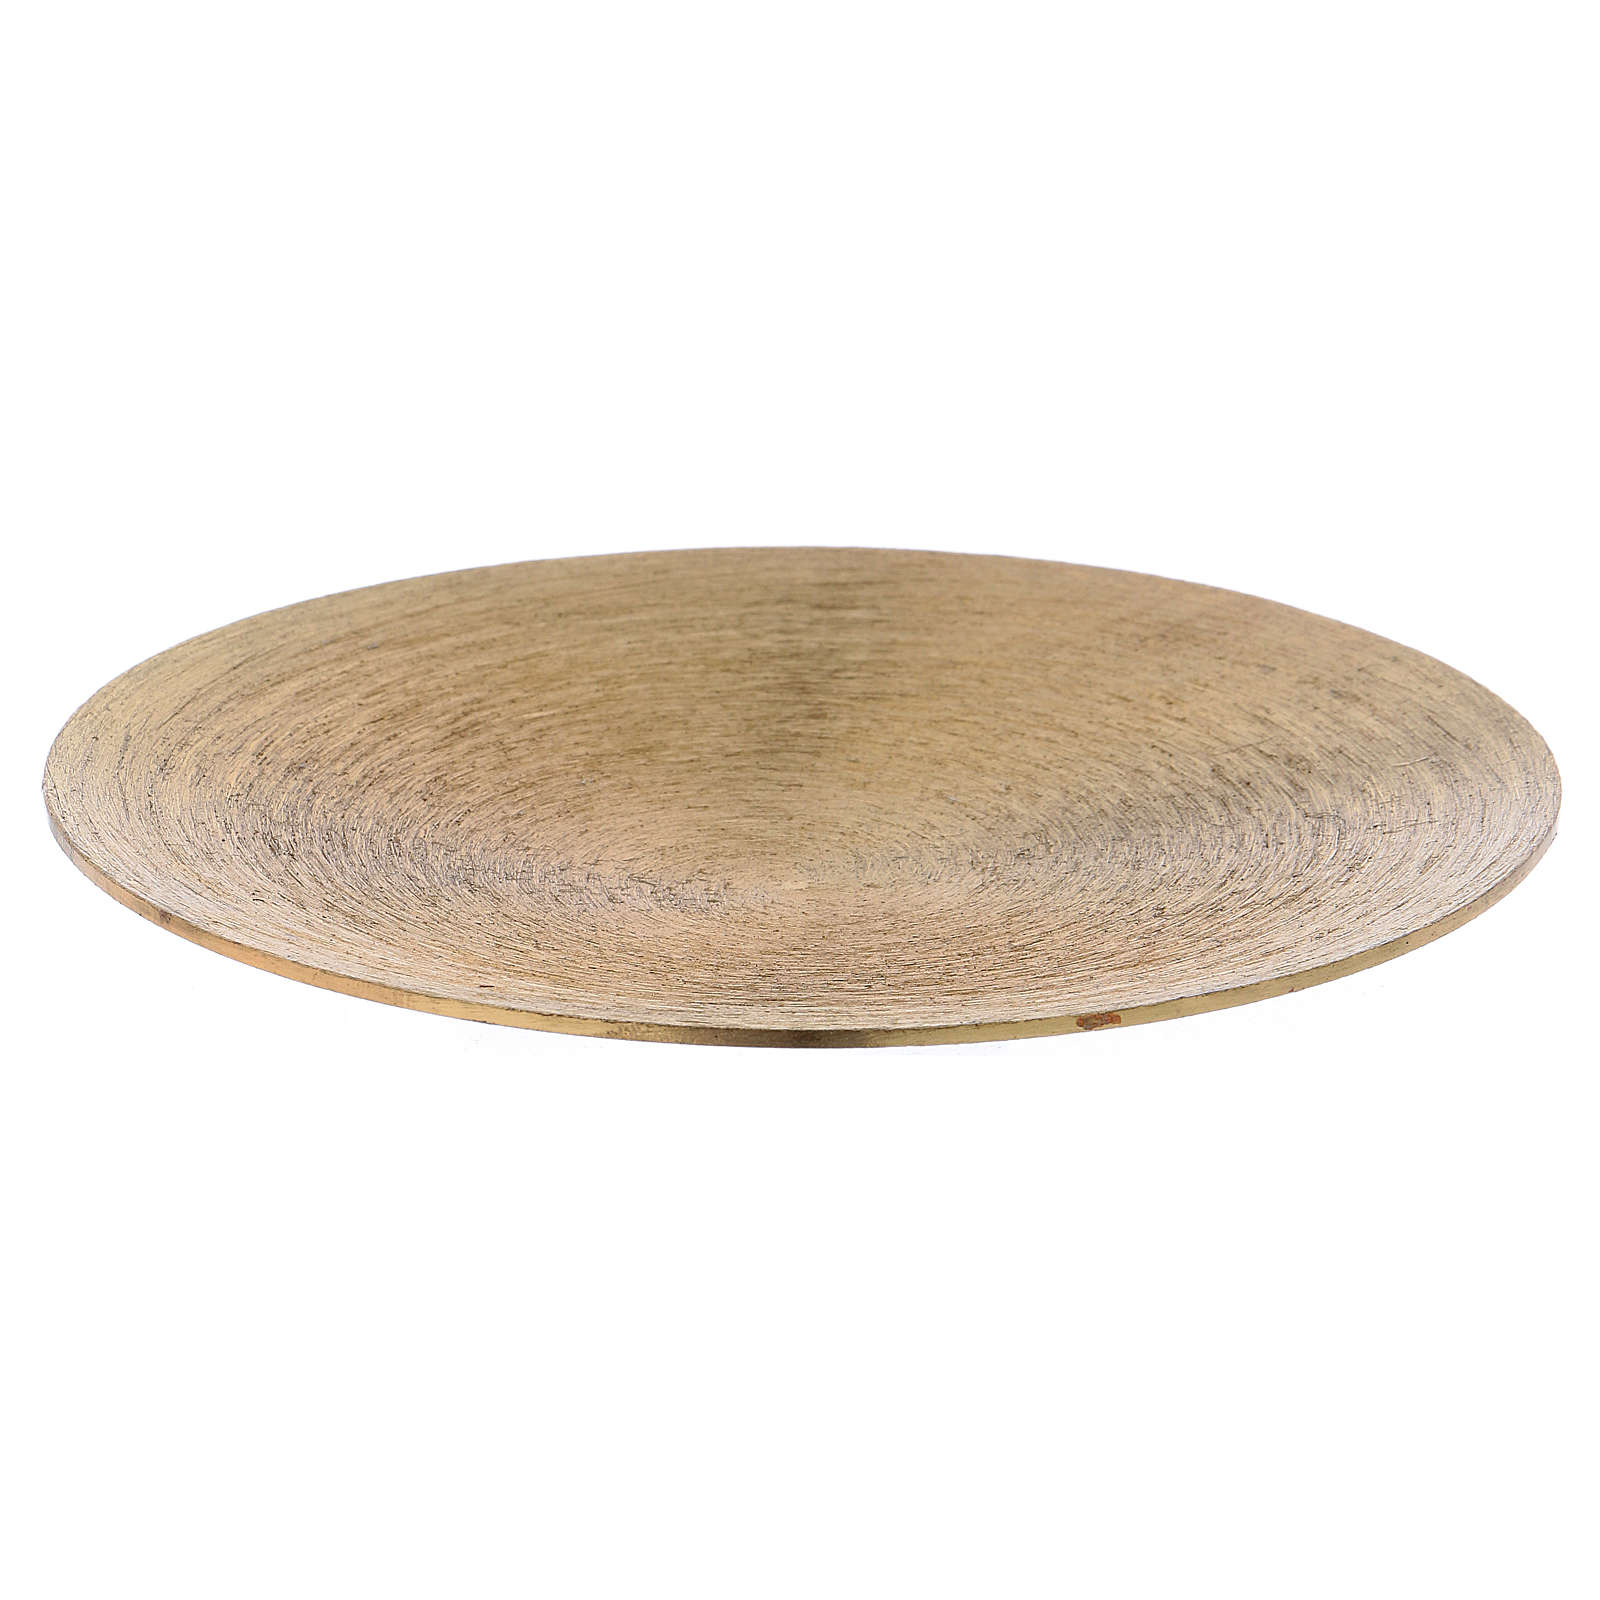 Round candle holder plate in gold-plated aluminium 3